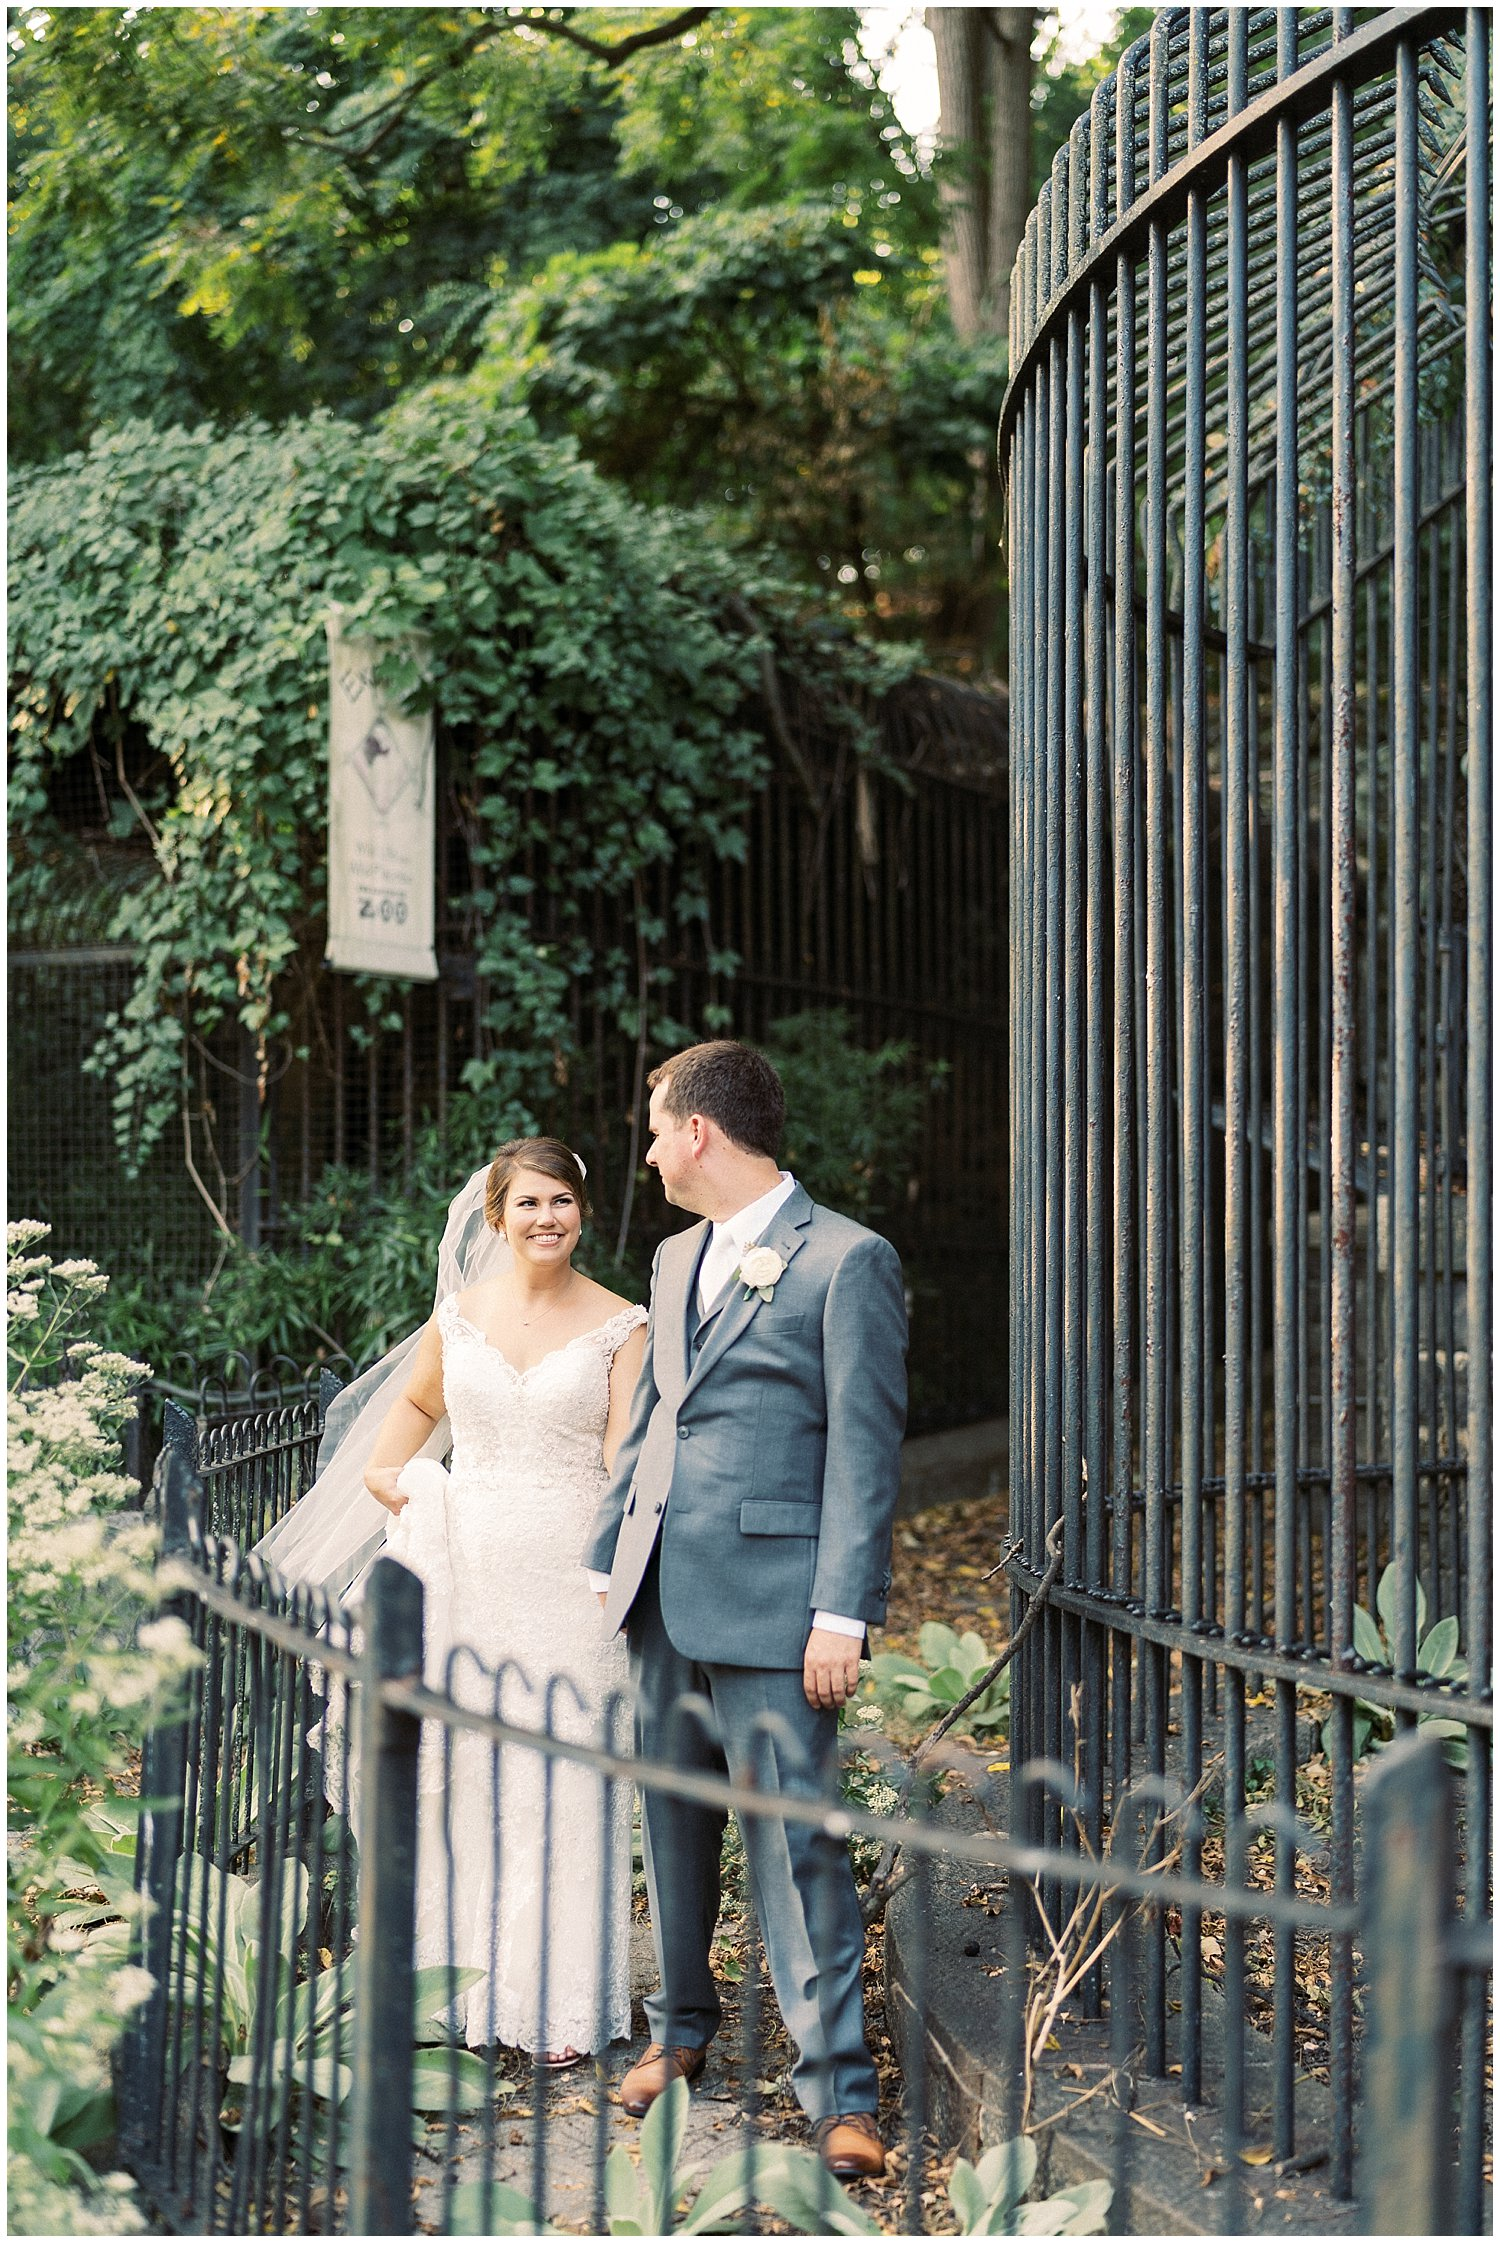 Baltimore zoo wedding photographer